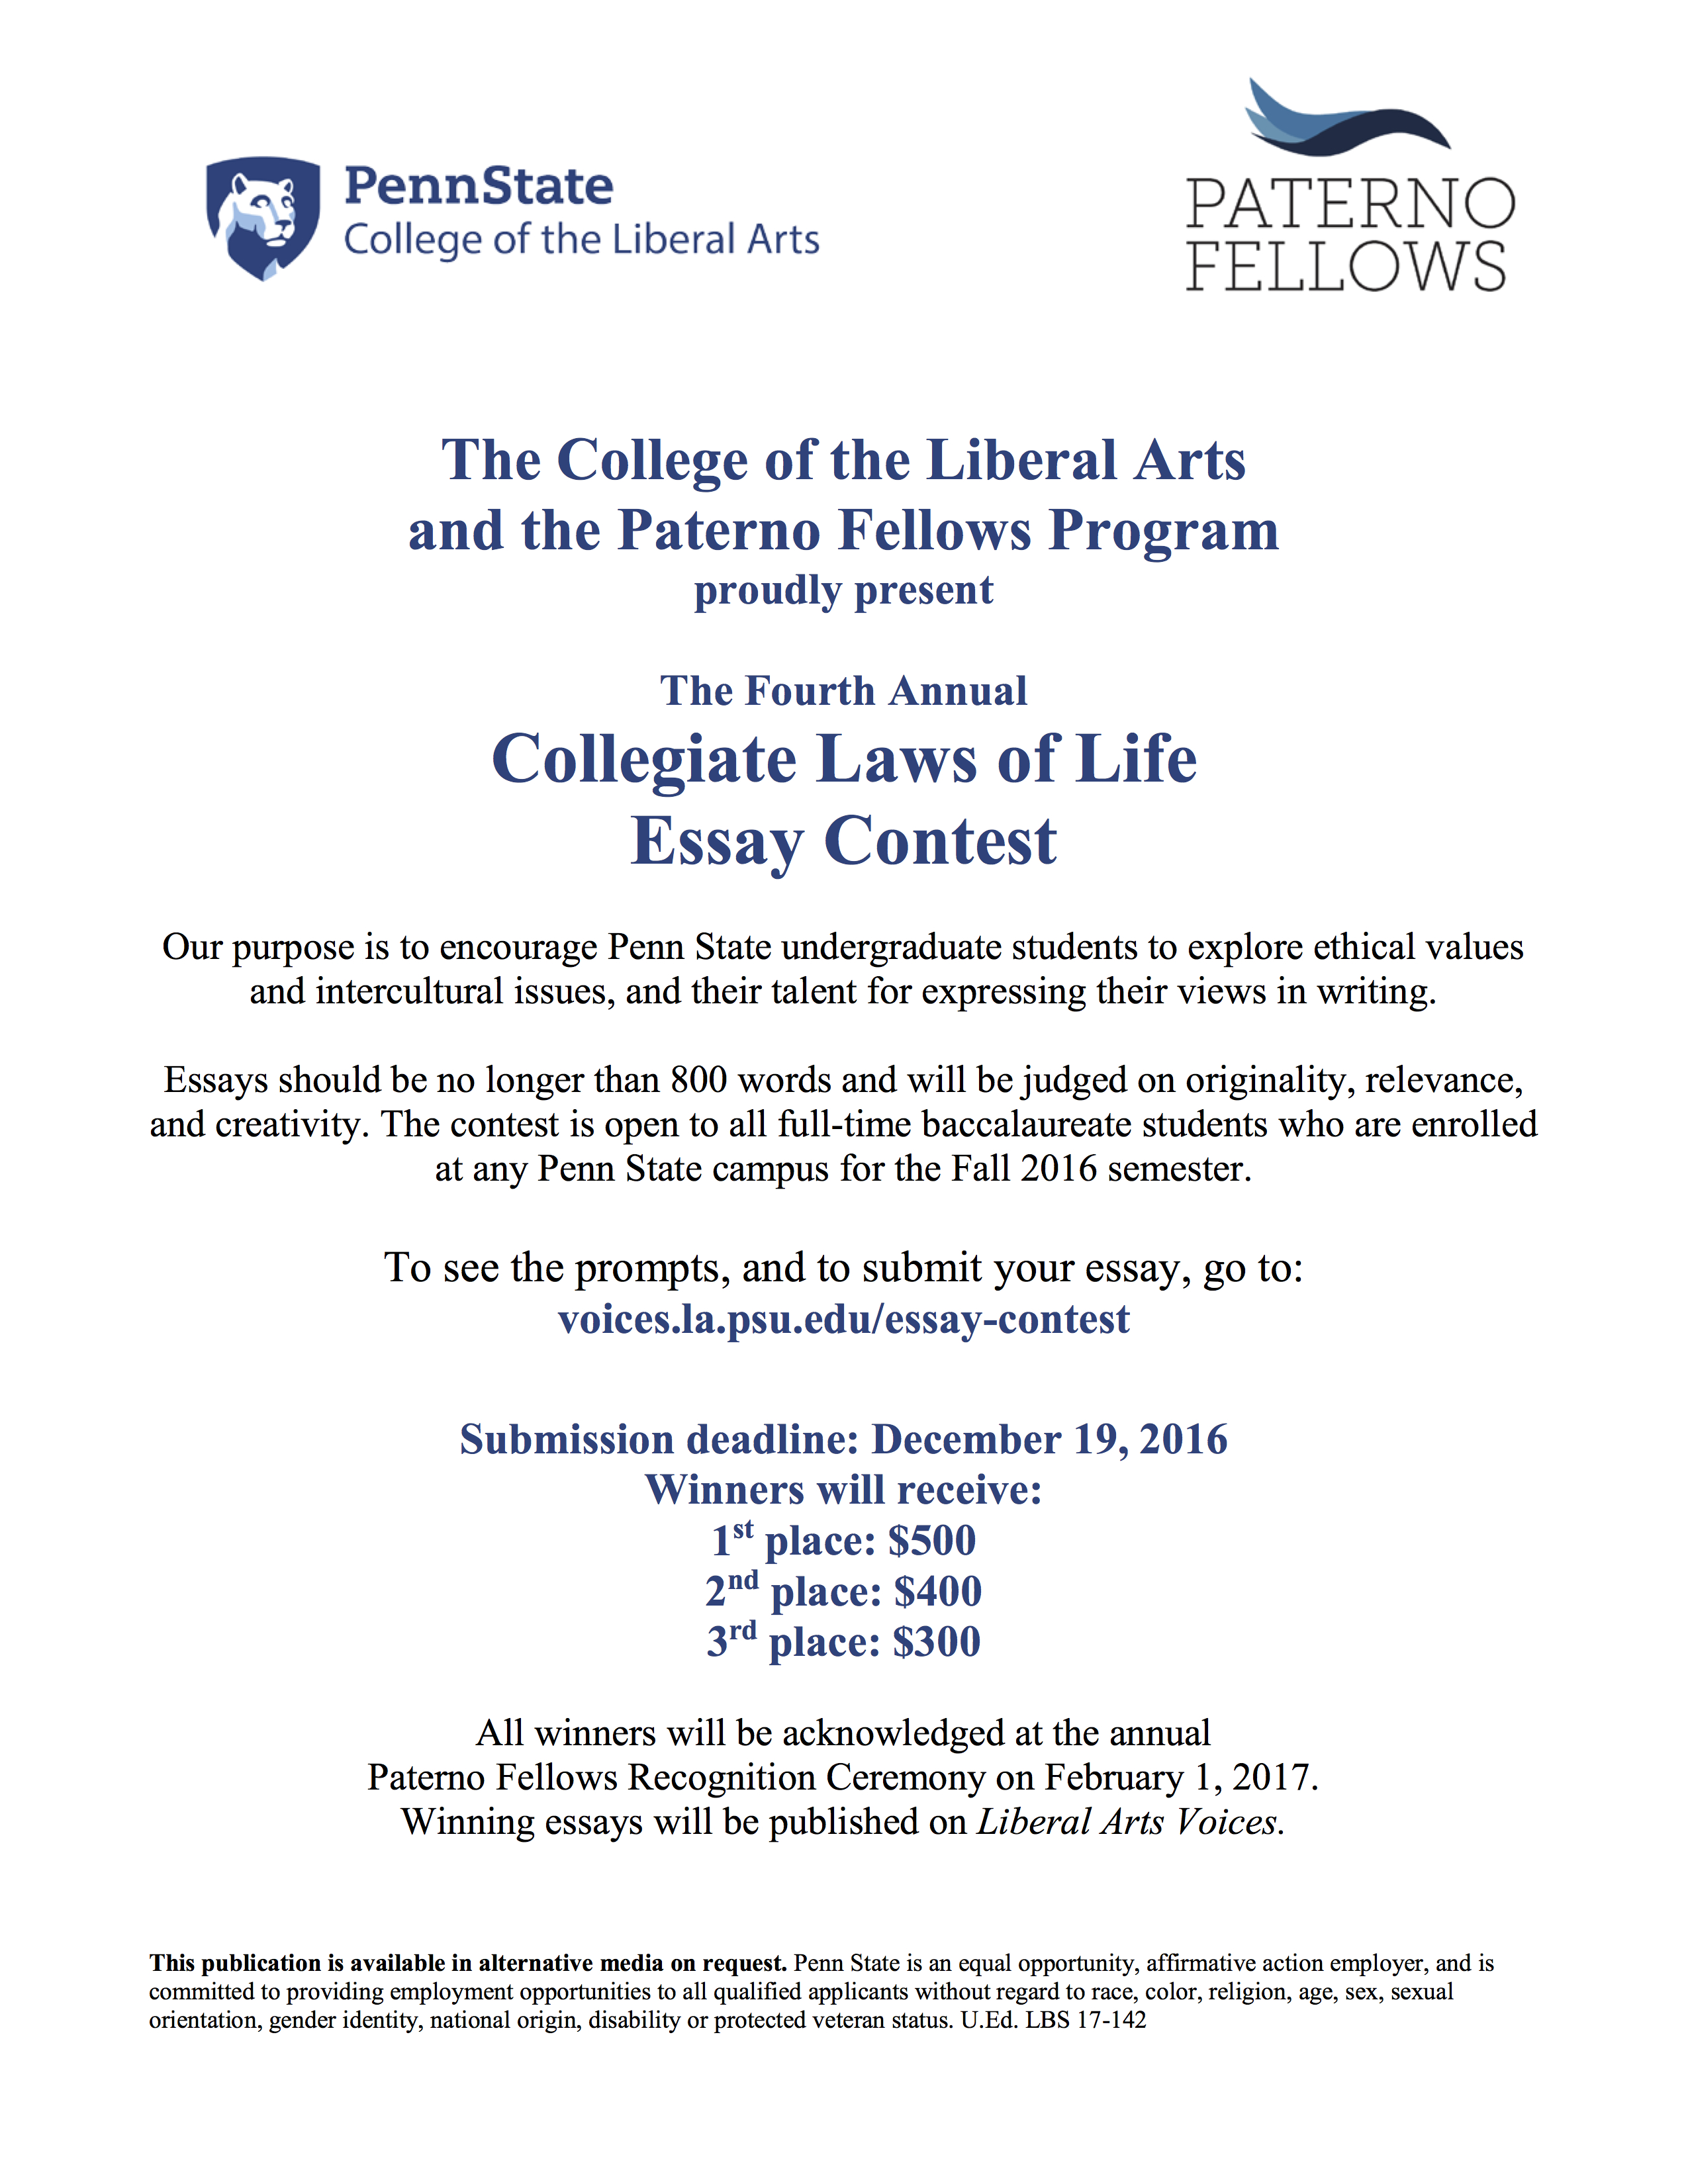 paterno fellows collegiate laws of life essay contest collegiate laws of life essay contest